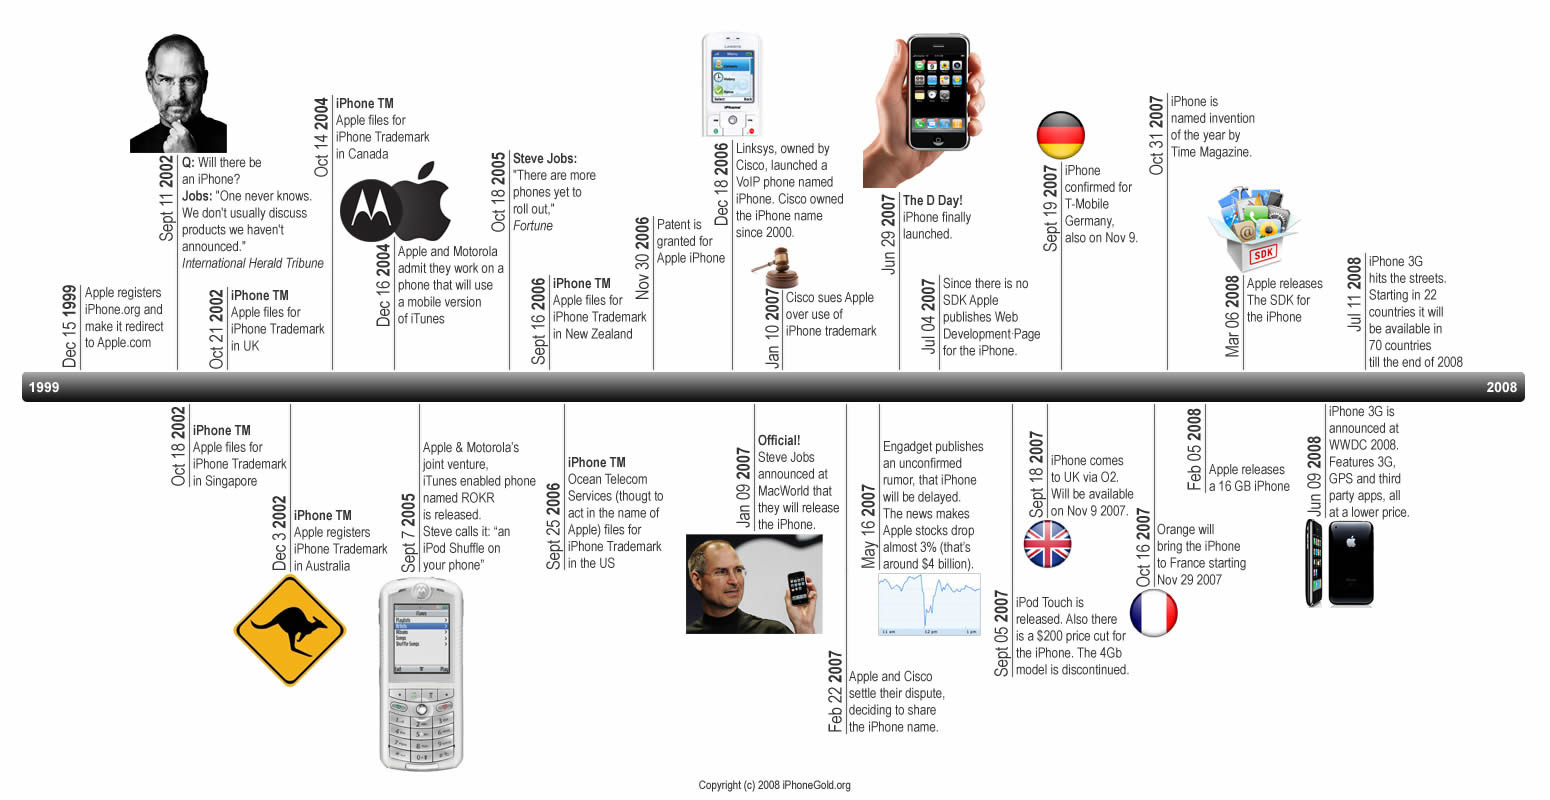 Iphone Histoire Frise Timeline Apple in addition o Solucionar Lo Problemas Con Pangu Tras Instalar El Jailbreak Ios 7 1 1 additionally Apple Granted Patent For Wireless Charging Dock Images in addition As Melhores Frases Geek De 2008 besides Tutte Le Novita Di Ios 8 Beta 2. on jailbreak siri ipad